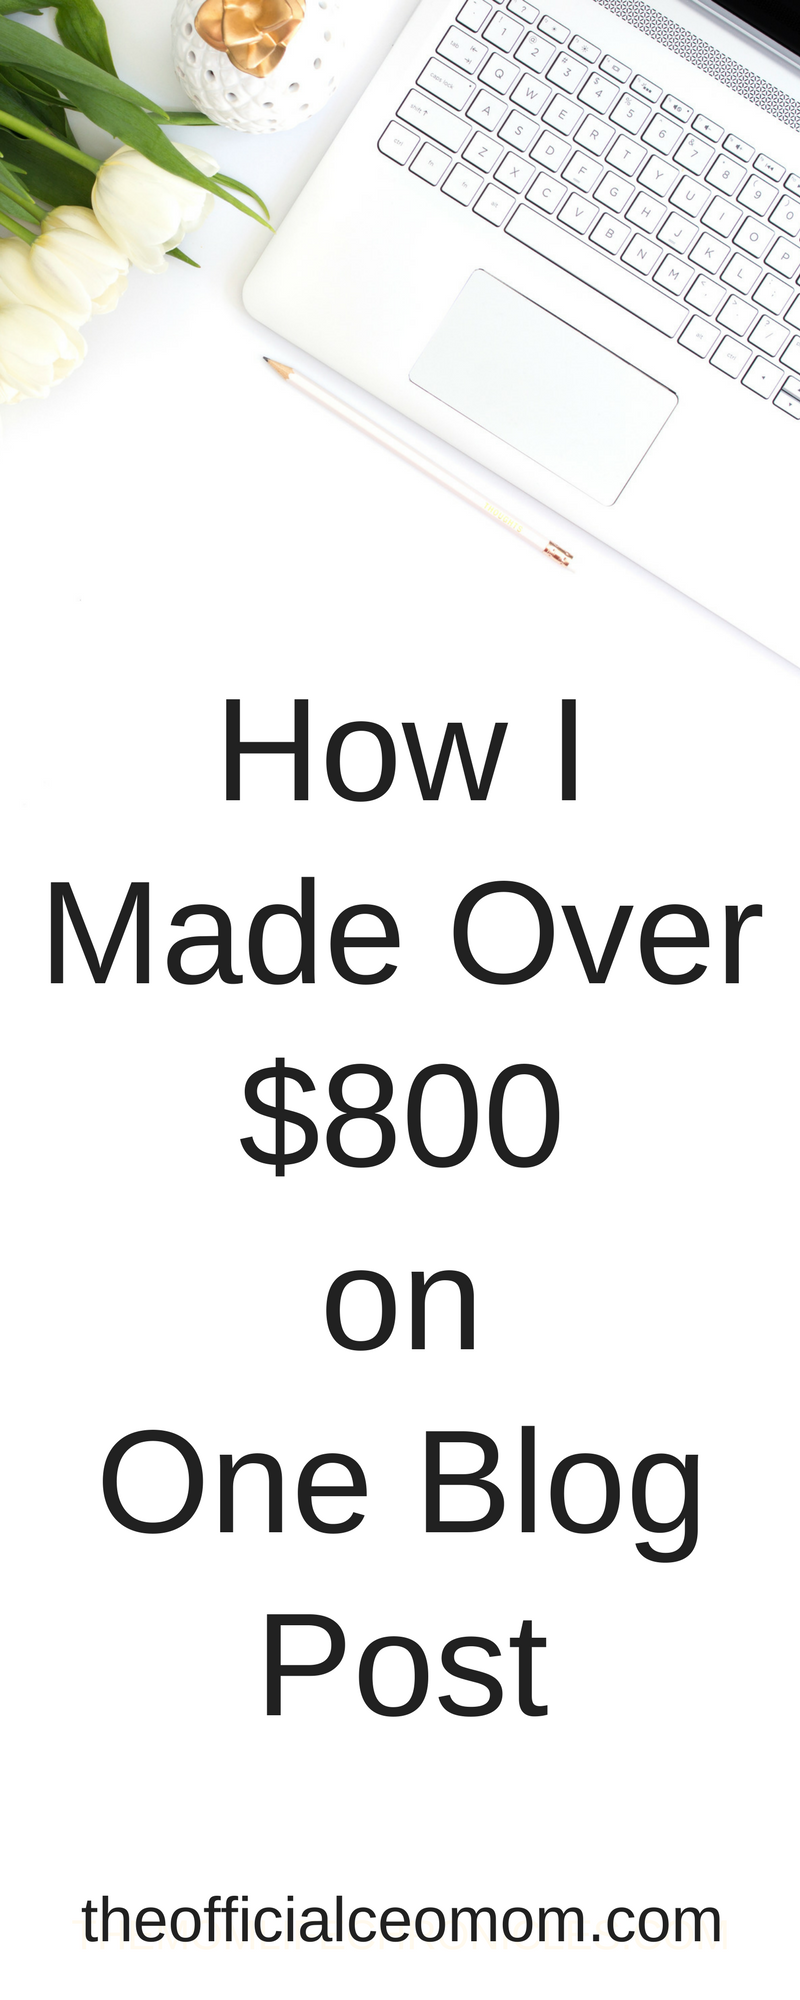 How I Made Over $800 on One Blog Post| How to Make Money